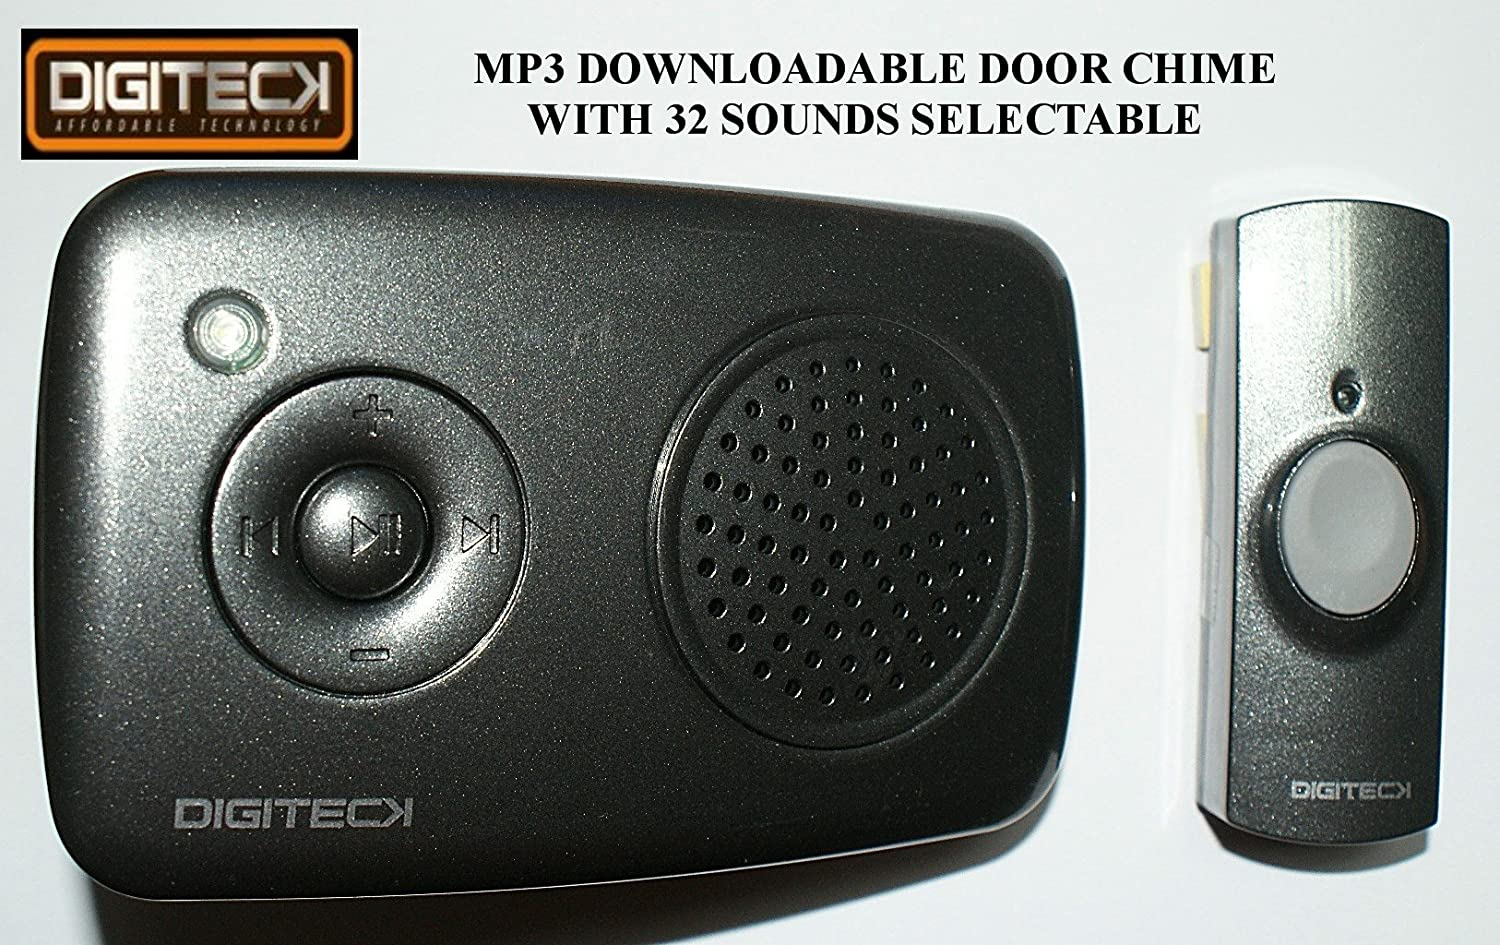 Amazon.com : E9A- DIY WIRELESS 100M RANGE MP3 DOWNLOADABLE DOOR ...